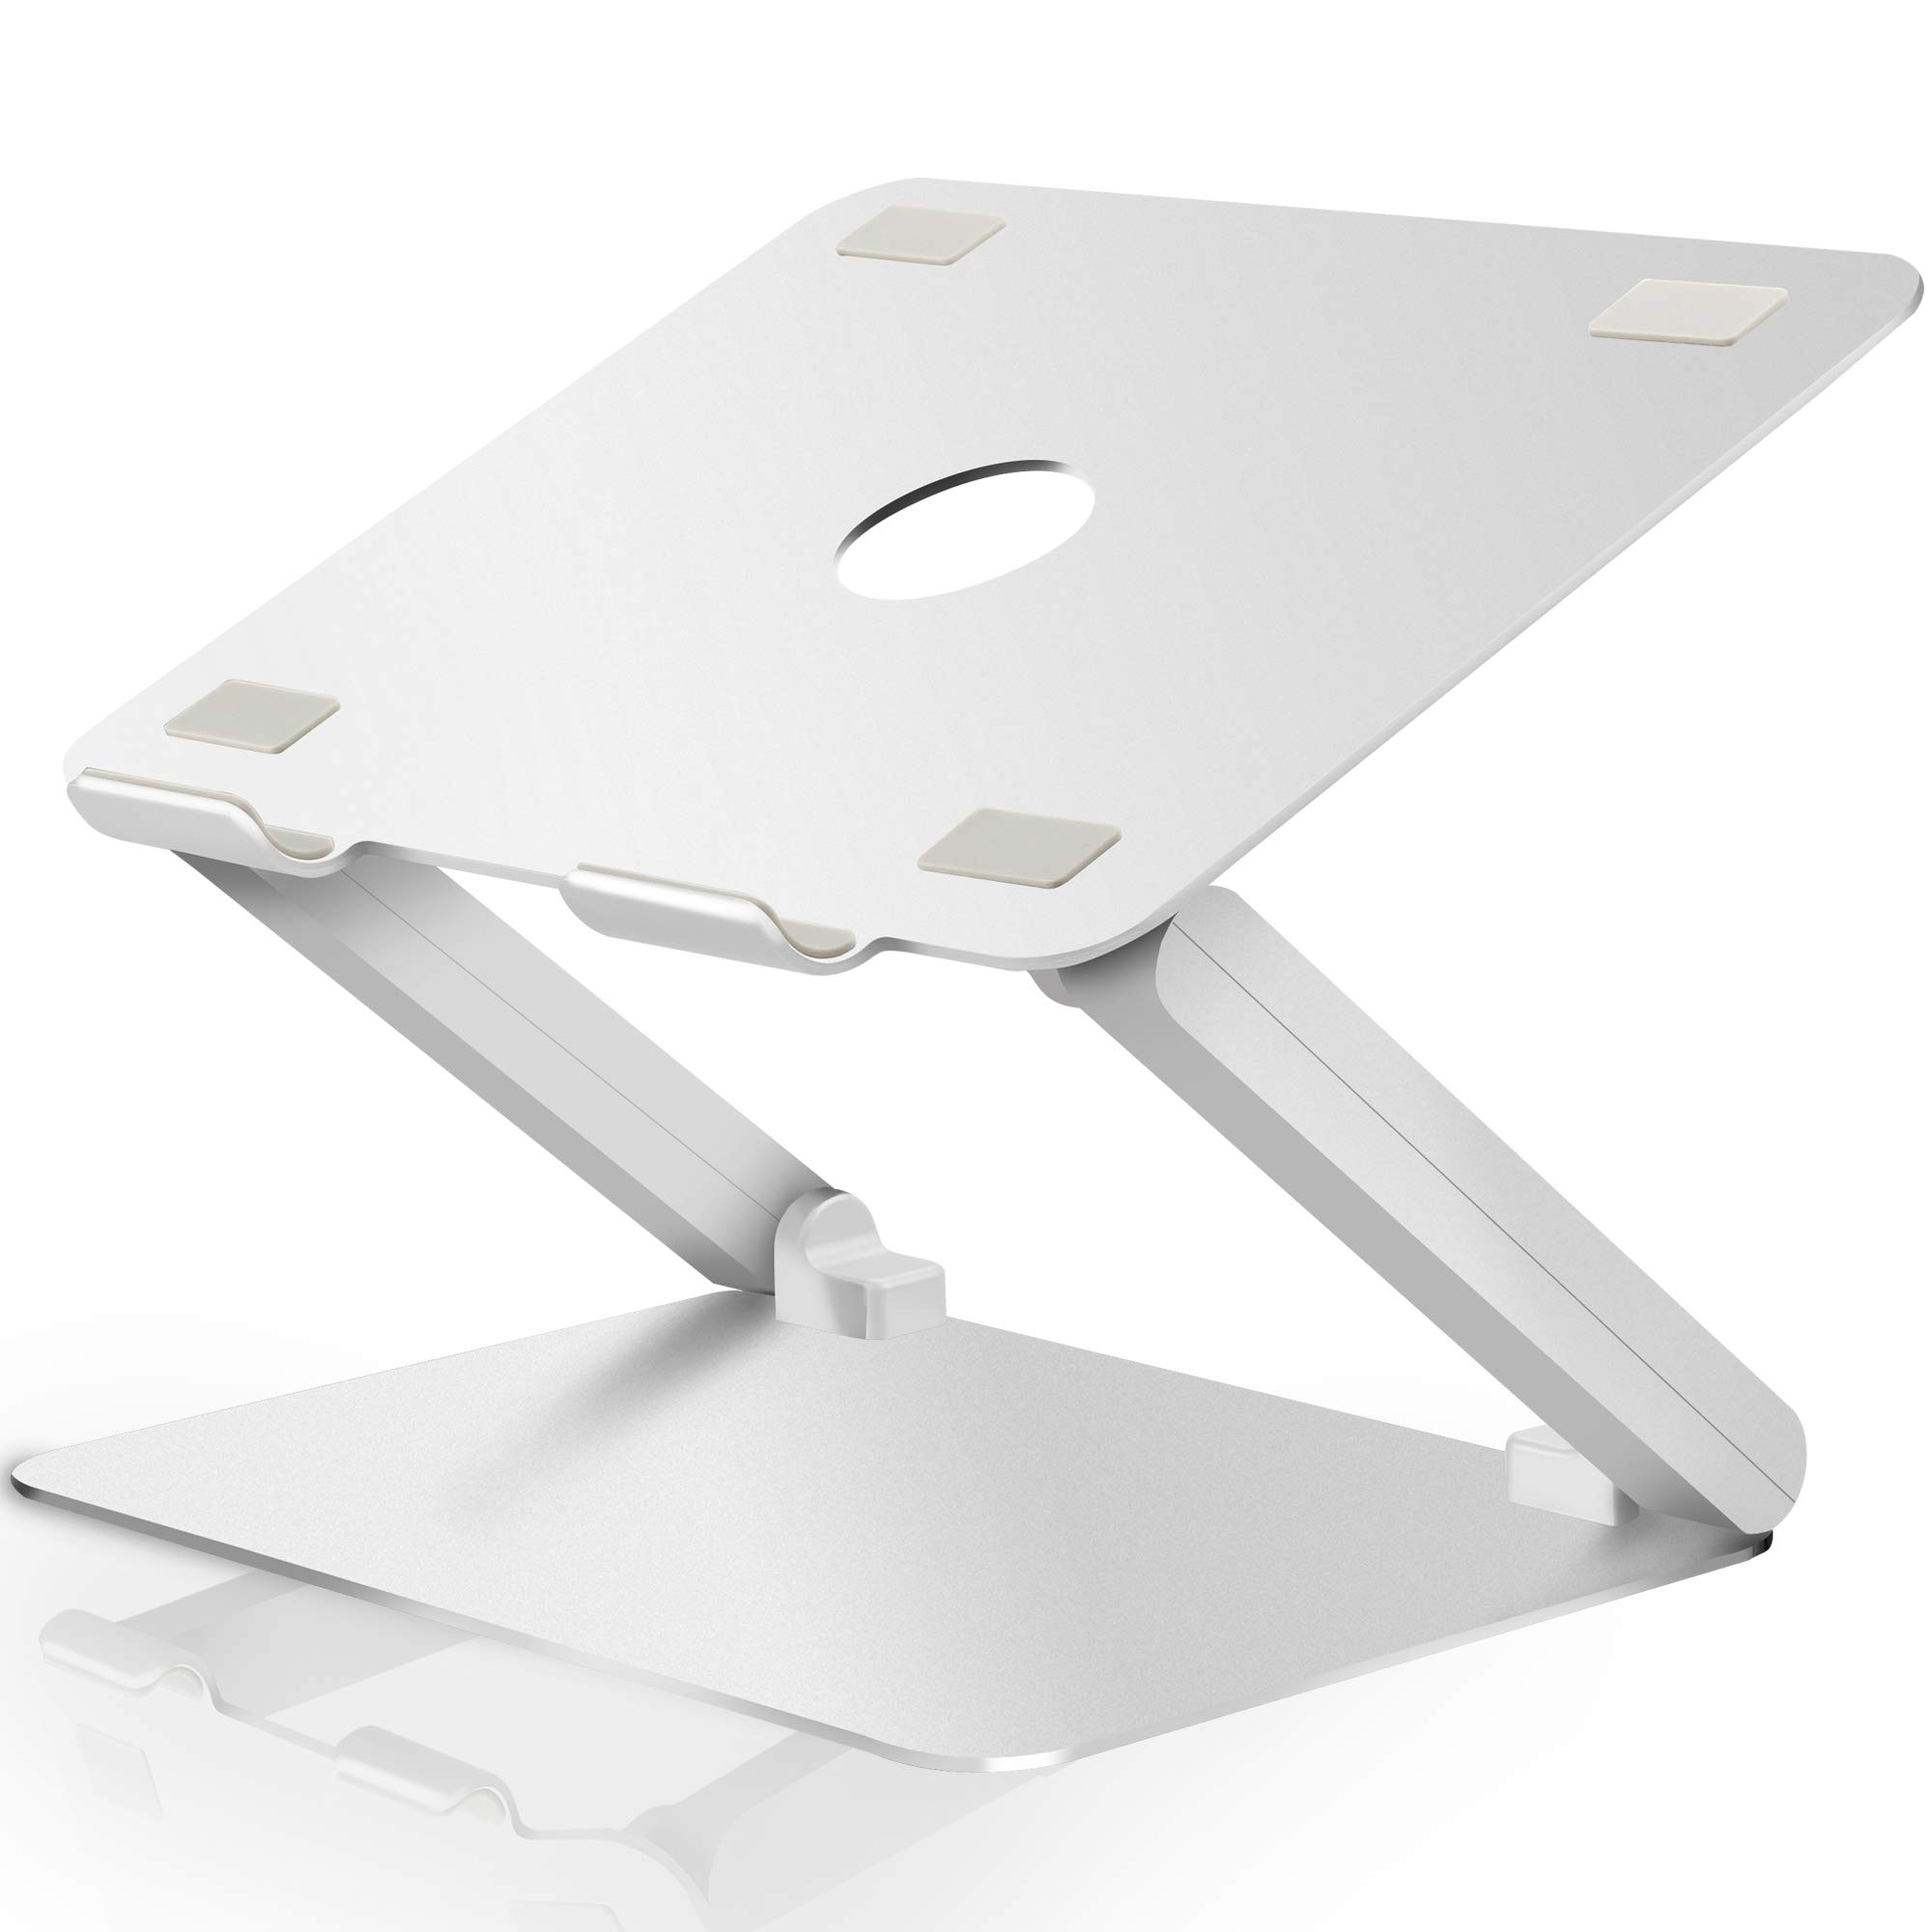 Soundance Laptop Stand Adjustable Riser Compatible with Apple Mac MacBook Pro Air, Ergonomic Aluminum Holder for 10-17.3 Inch Notebook Computer, Multi-Angle Stand with Heat-Vent to Elevate PC, Silver by Soundance